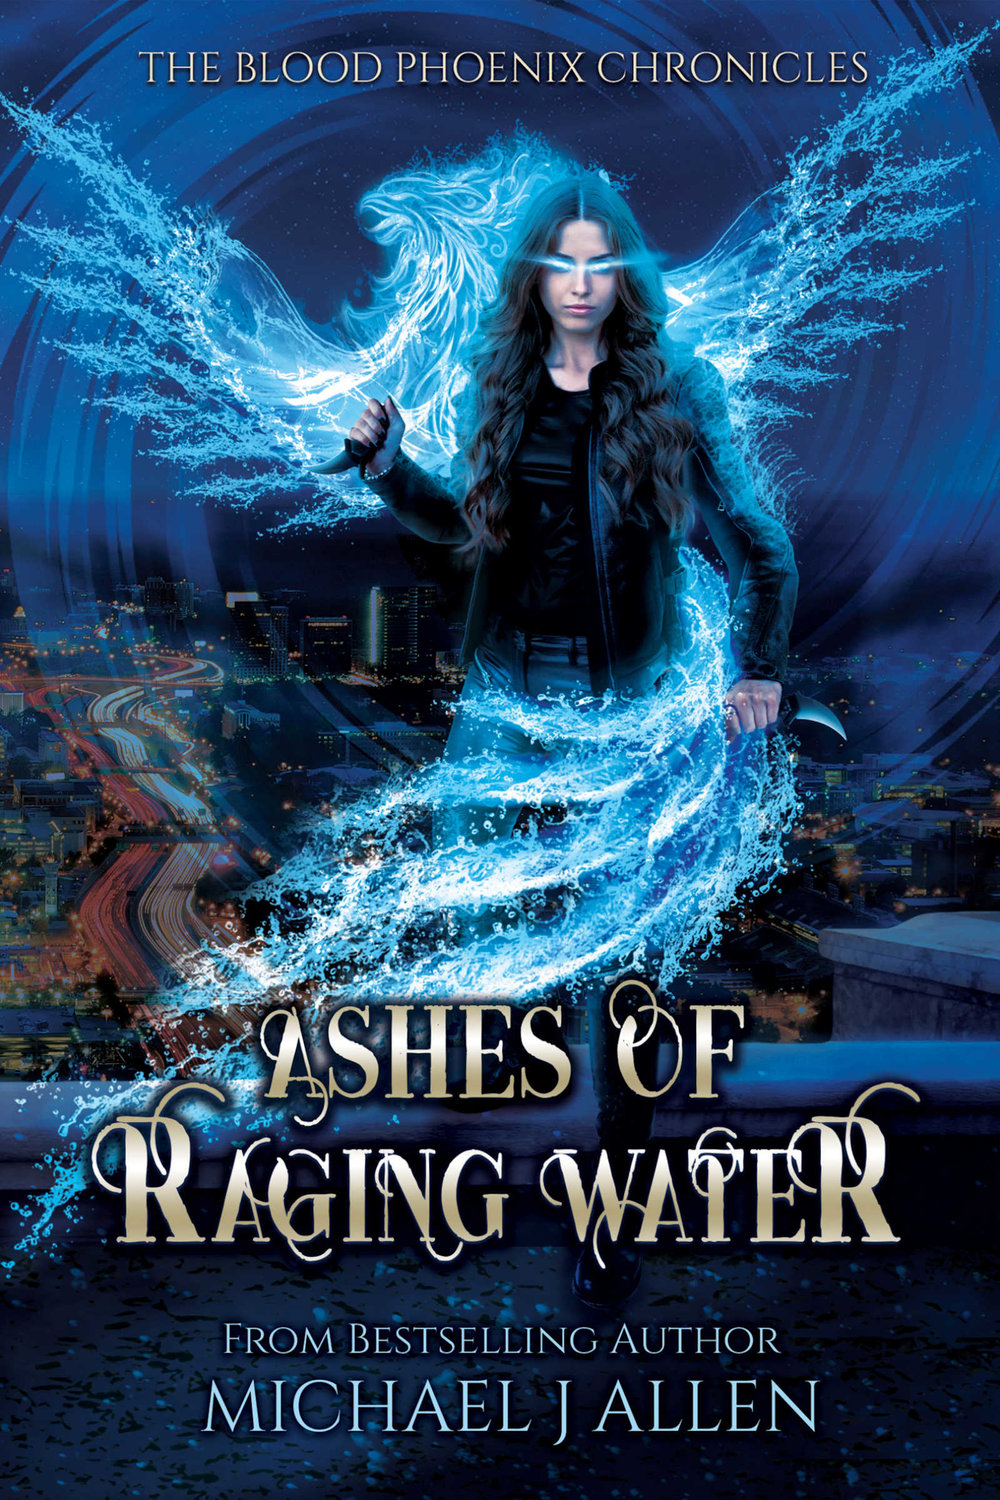 ASHES OF RAGING WATER     Michael J. Allen      Dark faeries plague Atlanta, trading wishes for slaves and souls.  When rival mischief devolves into war, a young phoenix reborn from water must risk True Death to save us from our own cataclysmic desires.